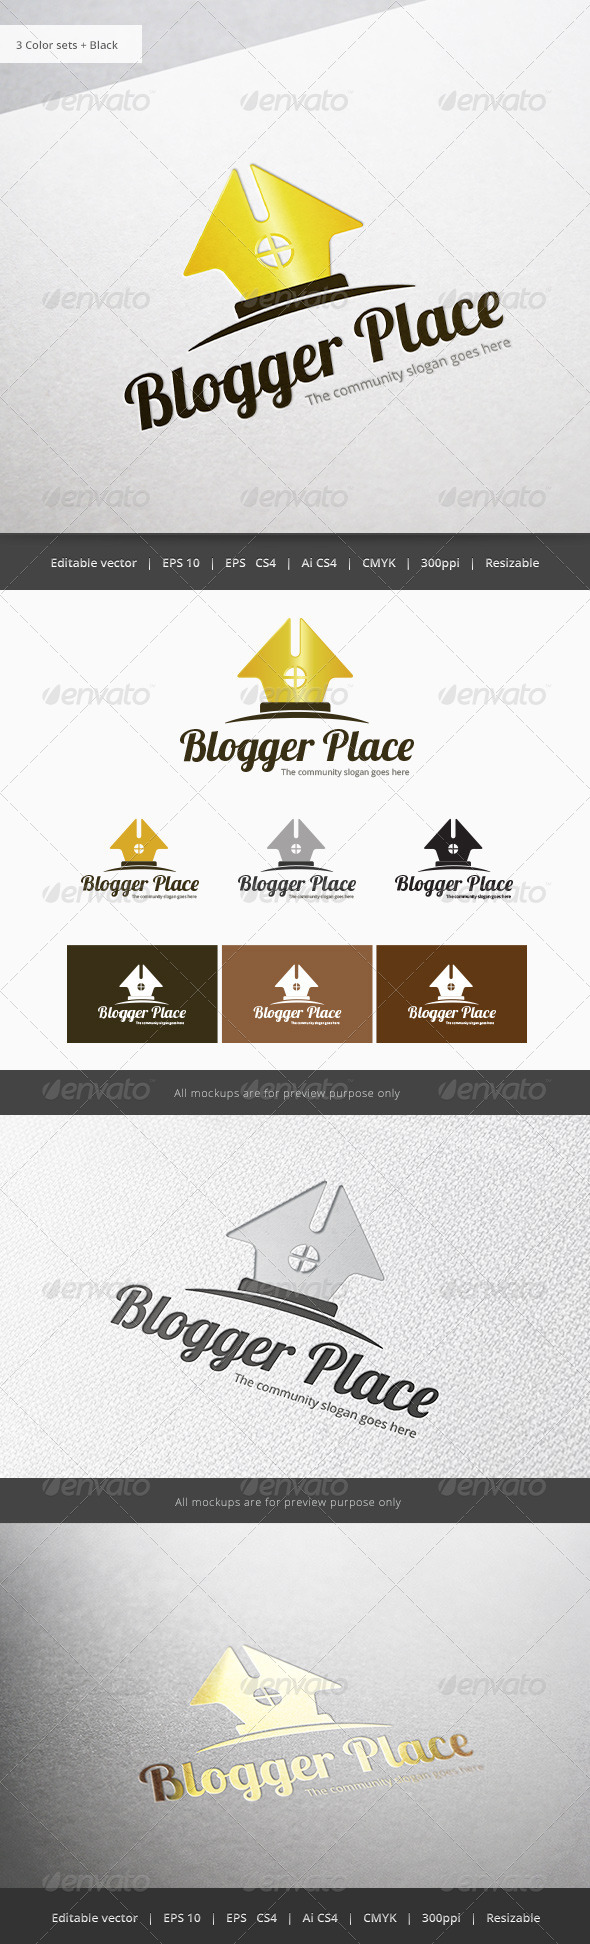 Blogger Place - Objects Logo Templates